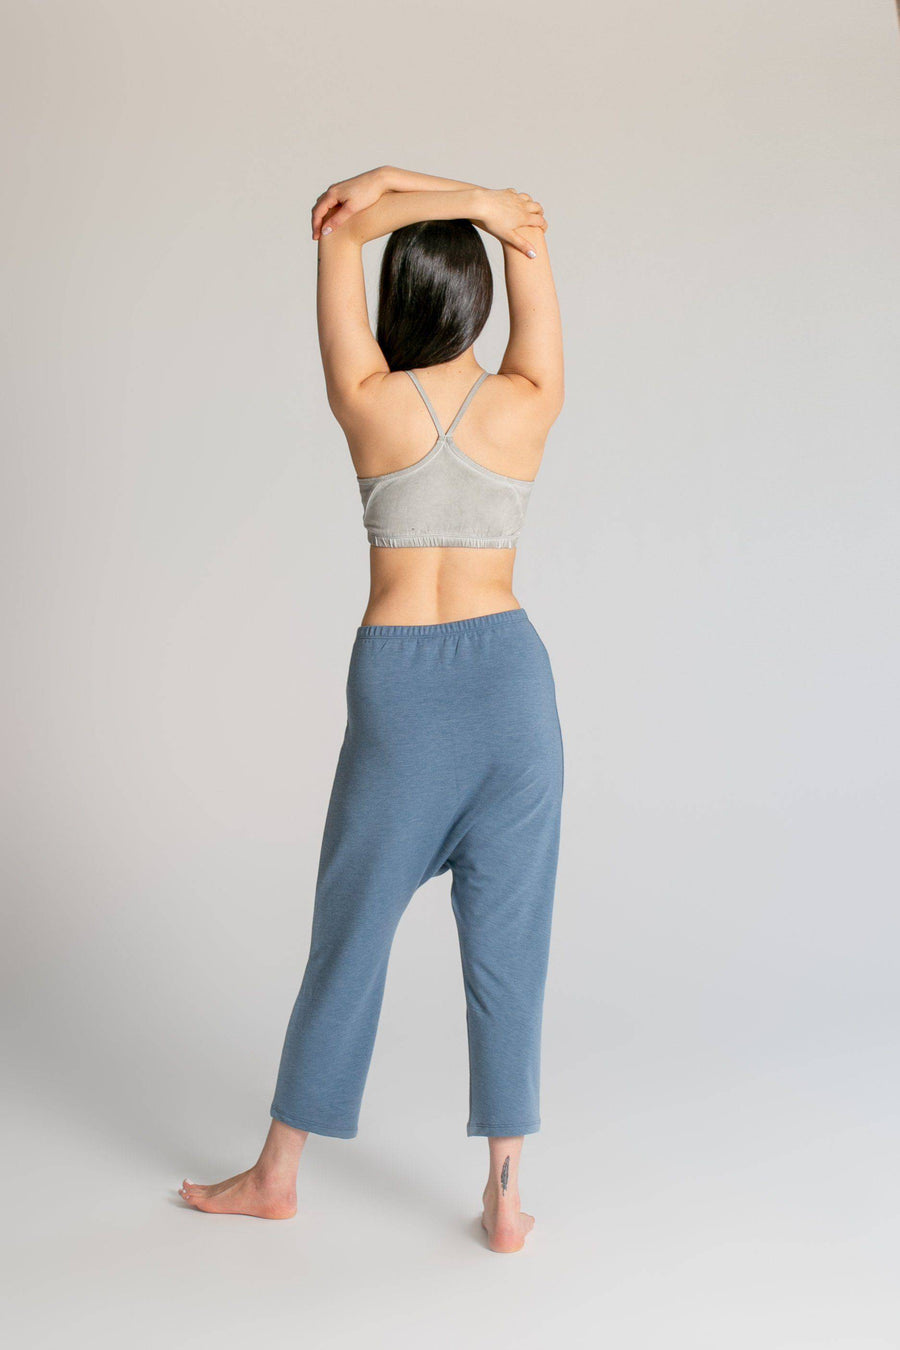 Cotton Viscose French Terry Cropped Pants womens clothing rippleyogawear denim-blue-french-terry S